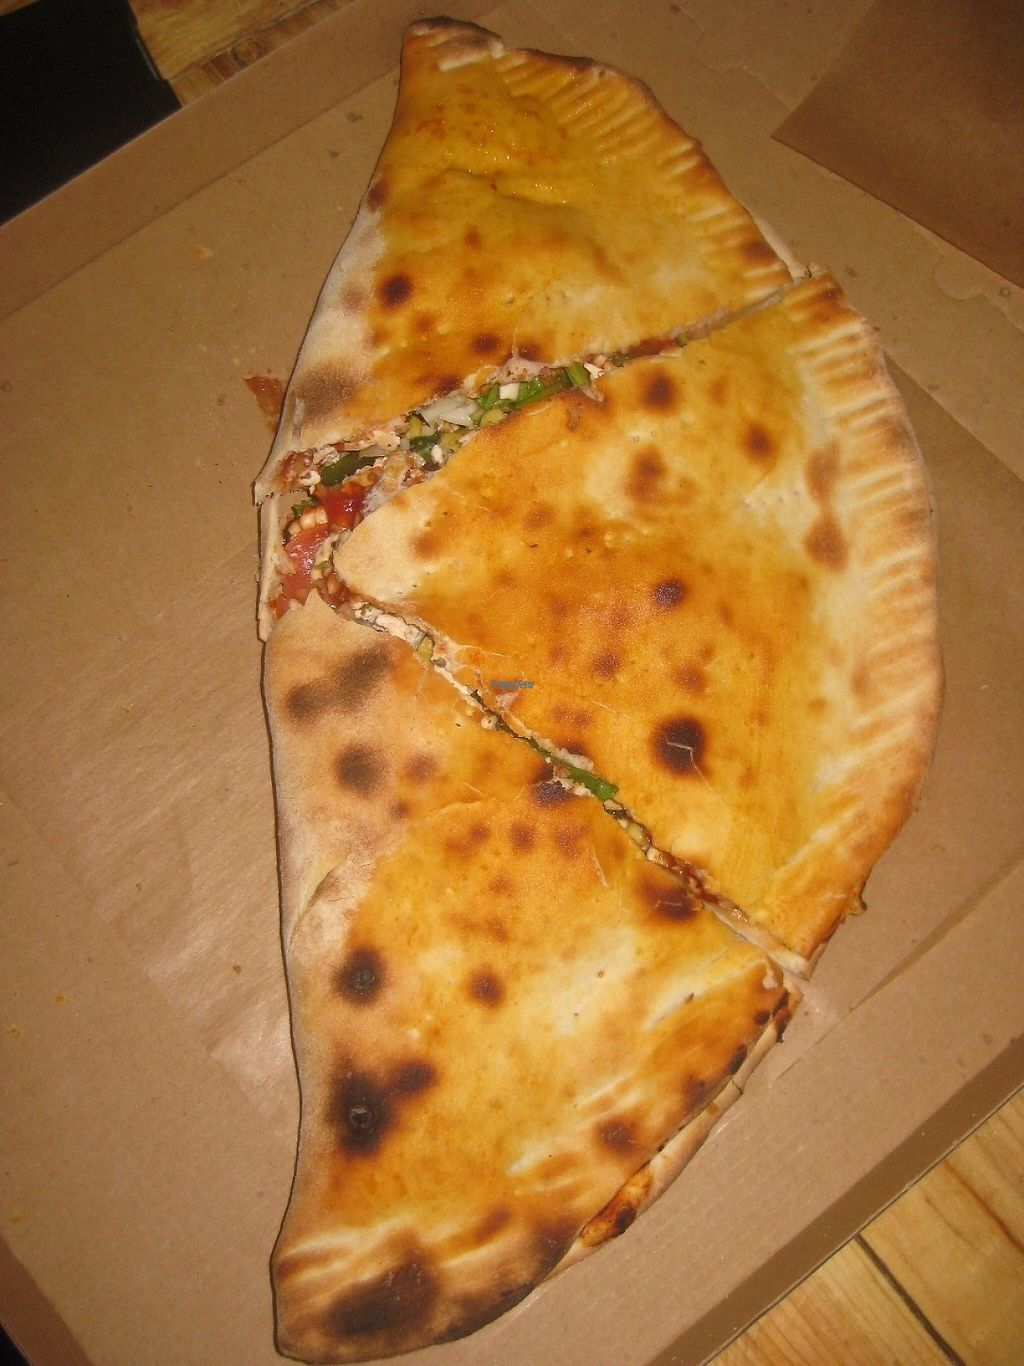 """Photo of Chutnej Fast Food  by <a href=""""/members/profile/jennyc32"""">jennyc32</a> <br/>Calzone (kapsa) <br/> April 25, 2017  - <a href='/contact/abuse/image/84697/252252'>Report</a>"""